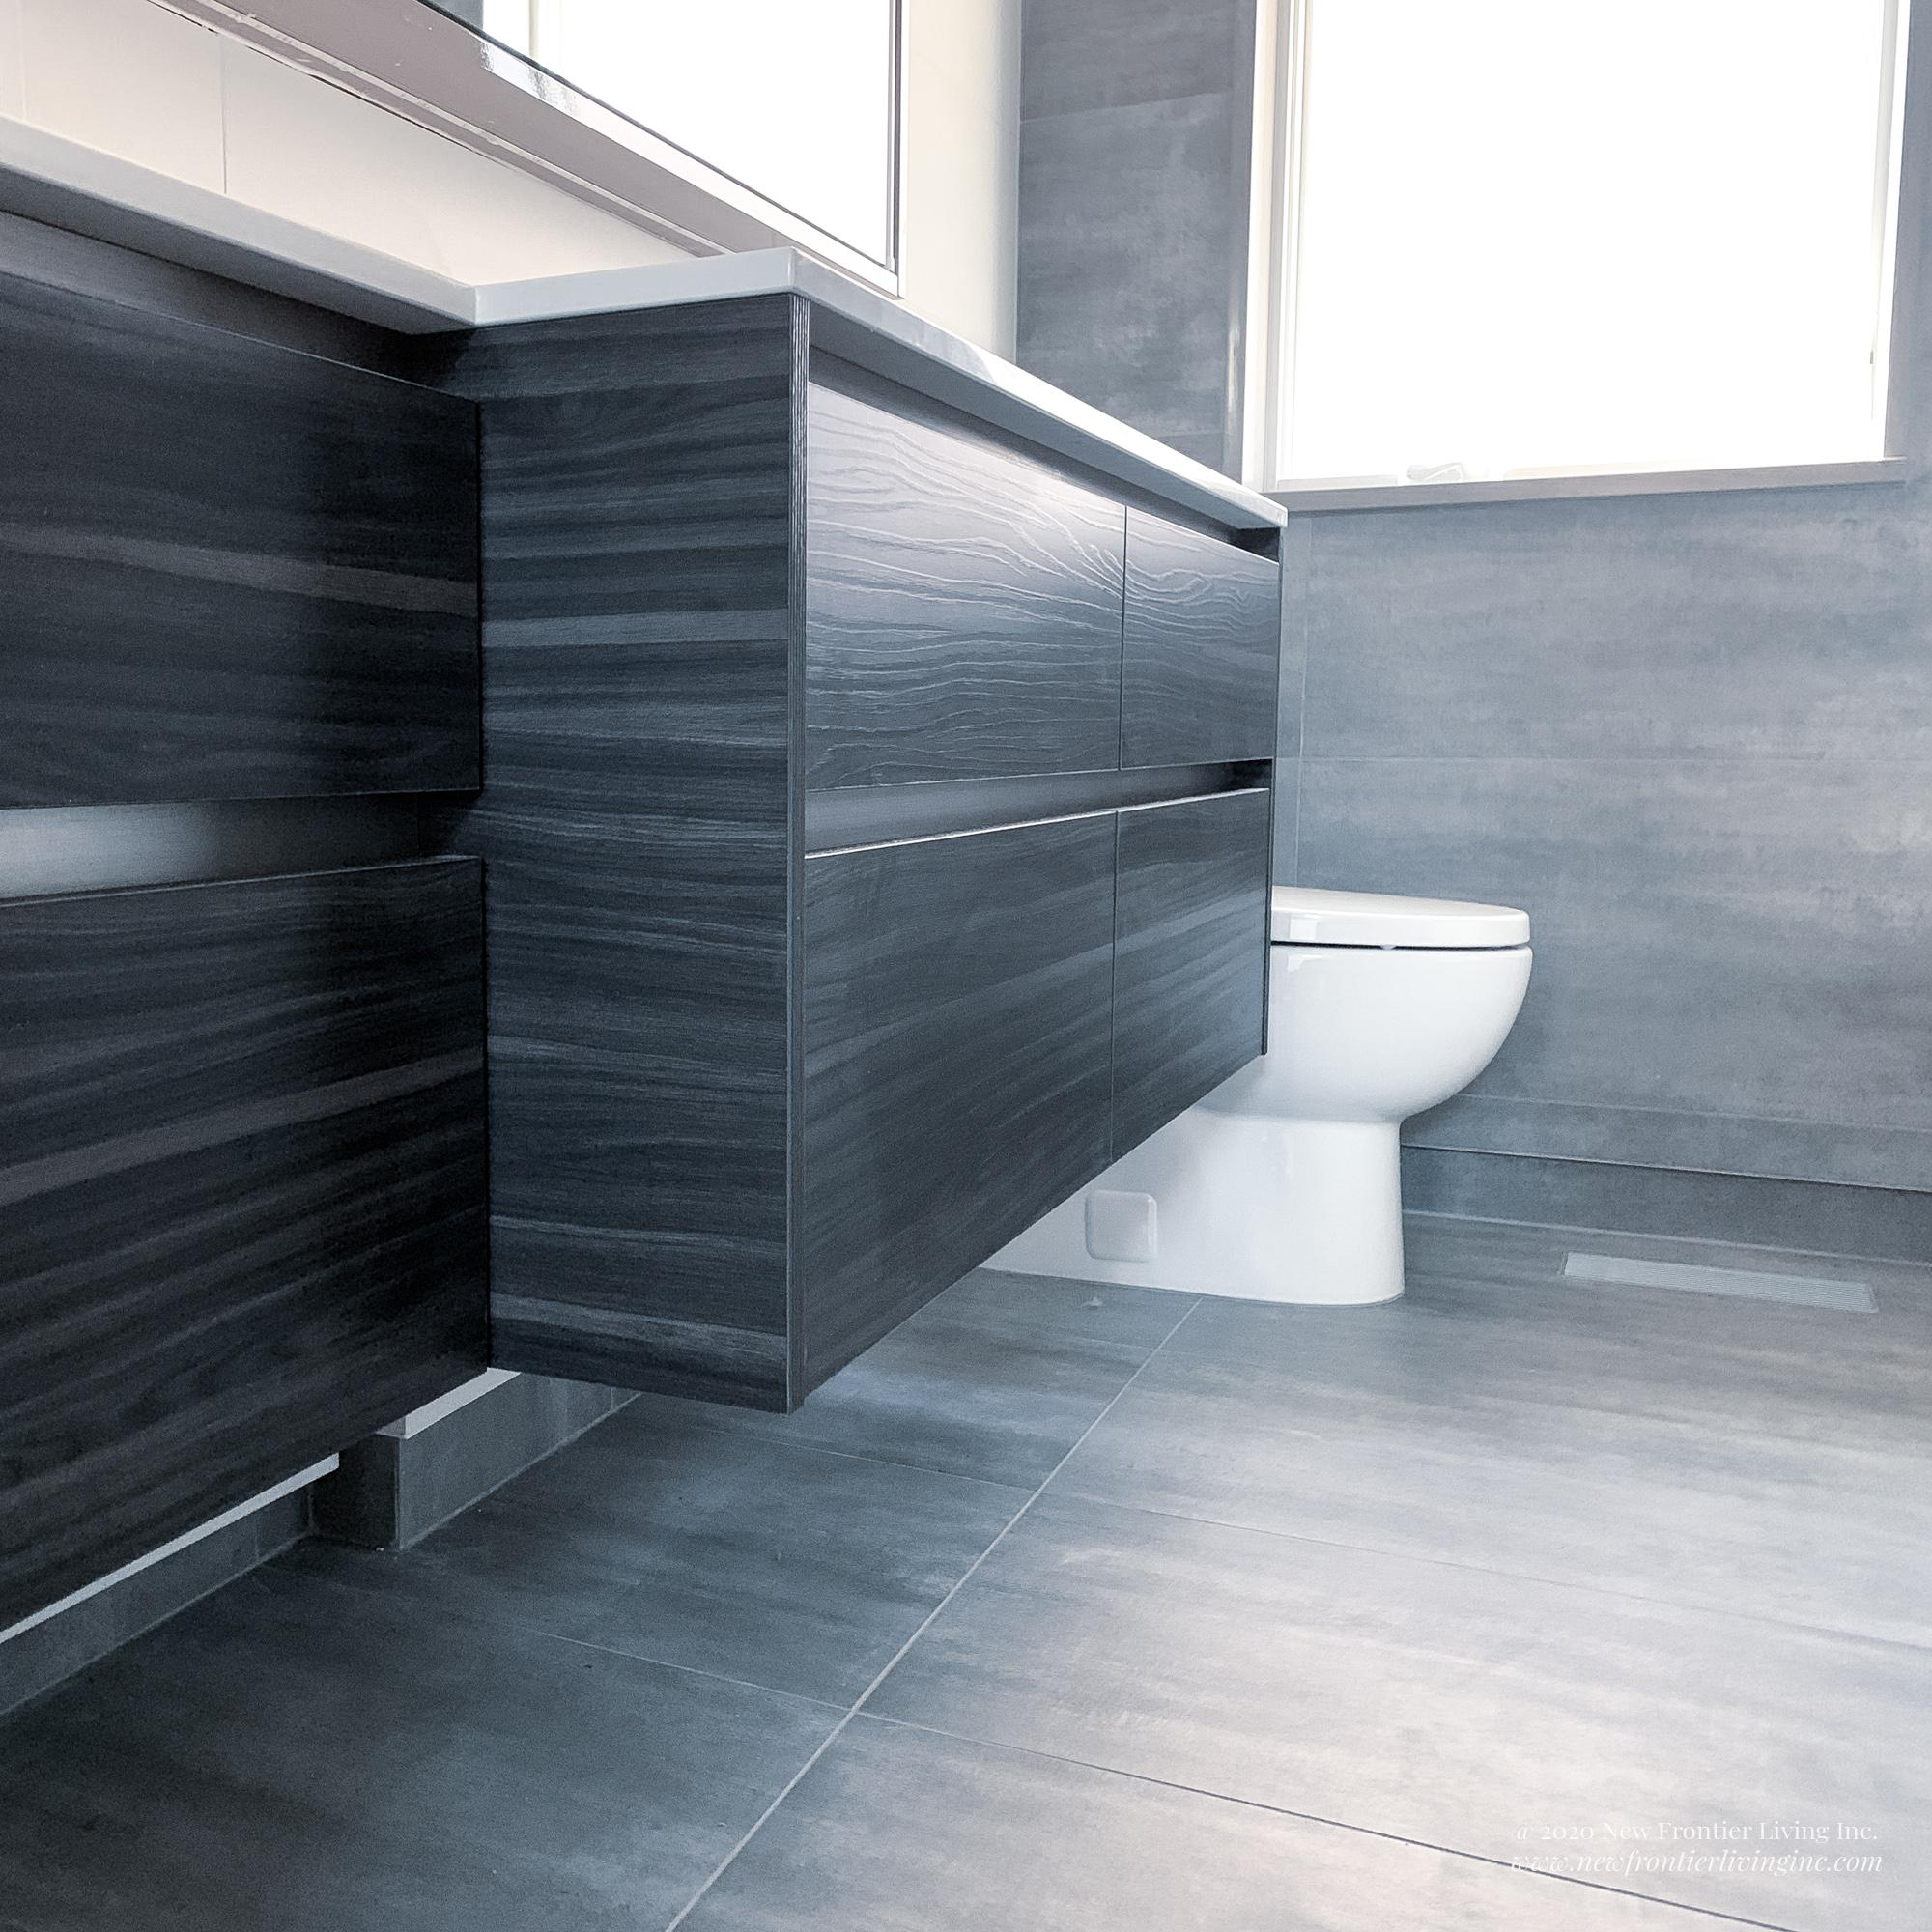 Small dark and light gray bathroom low angle, toilet and window in view